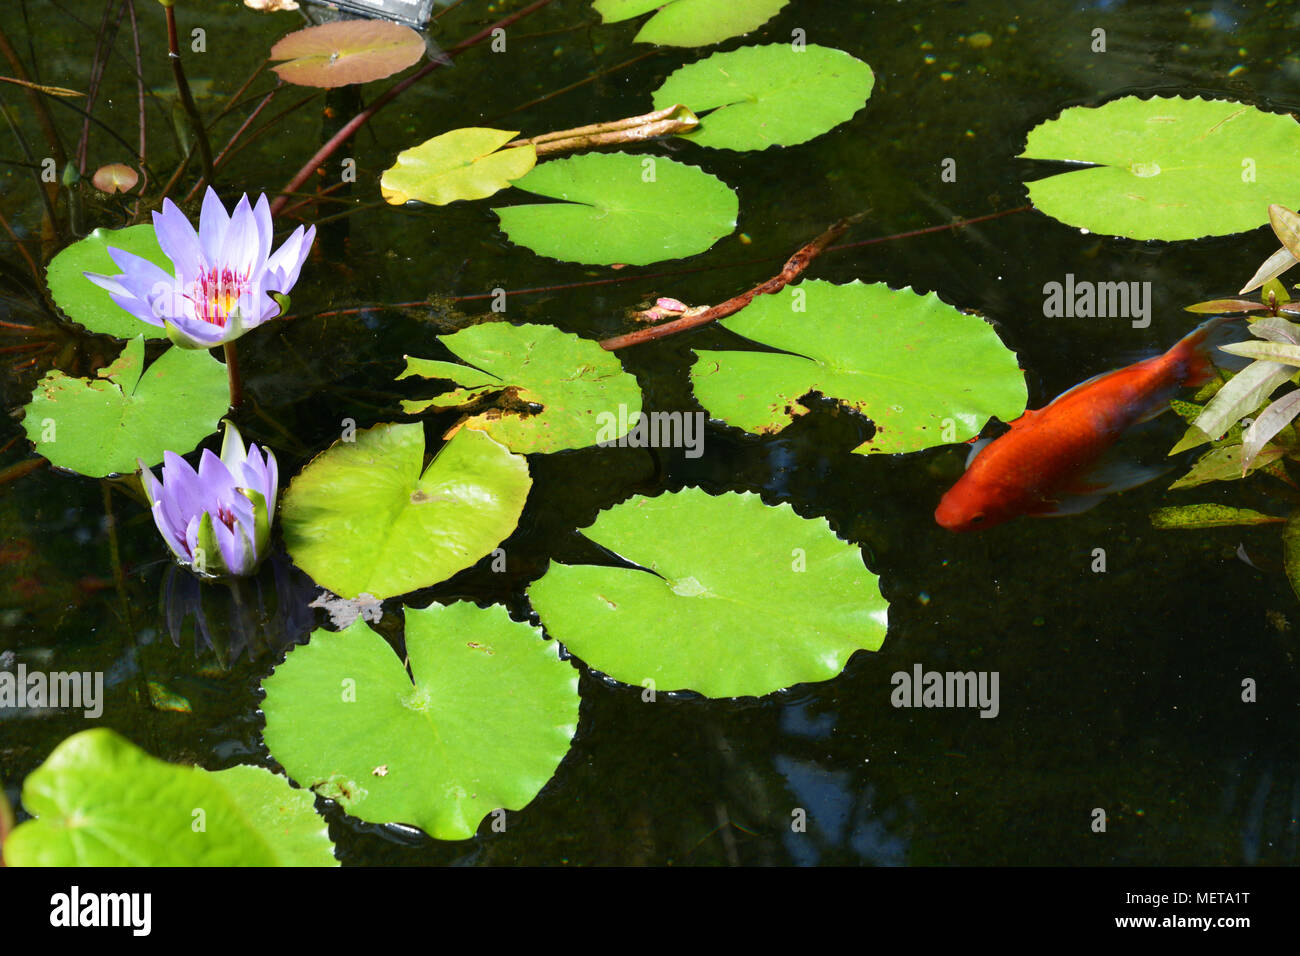 Purple lotus flower in a koi pond in a conservatory greenhouse stock purple lotus flower in a koi pond in a conservatory greenhouse izmirmasajfo